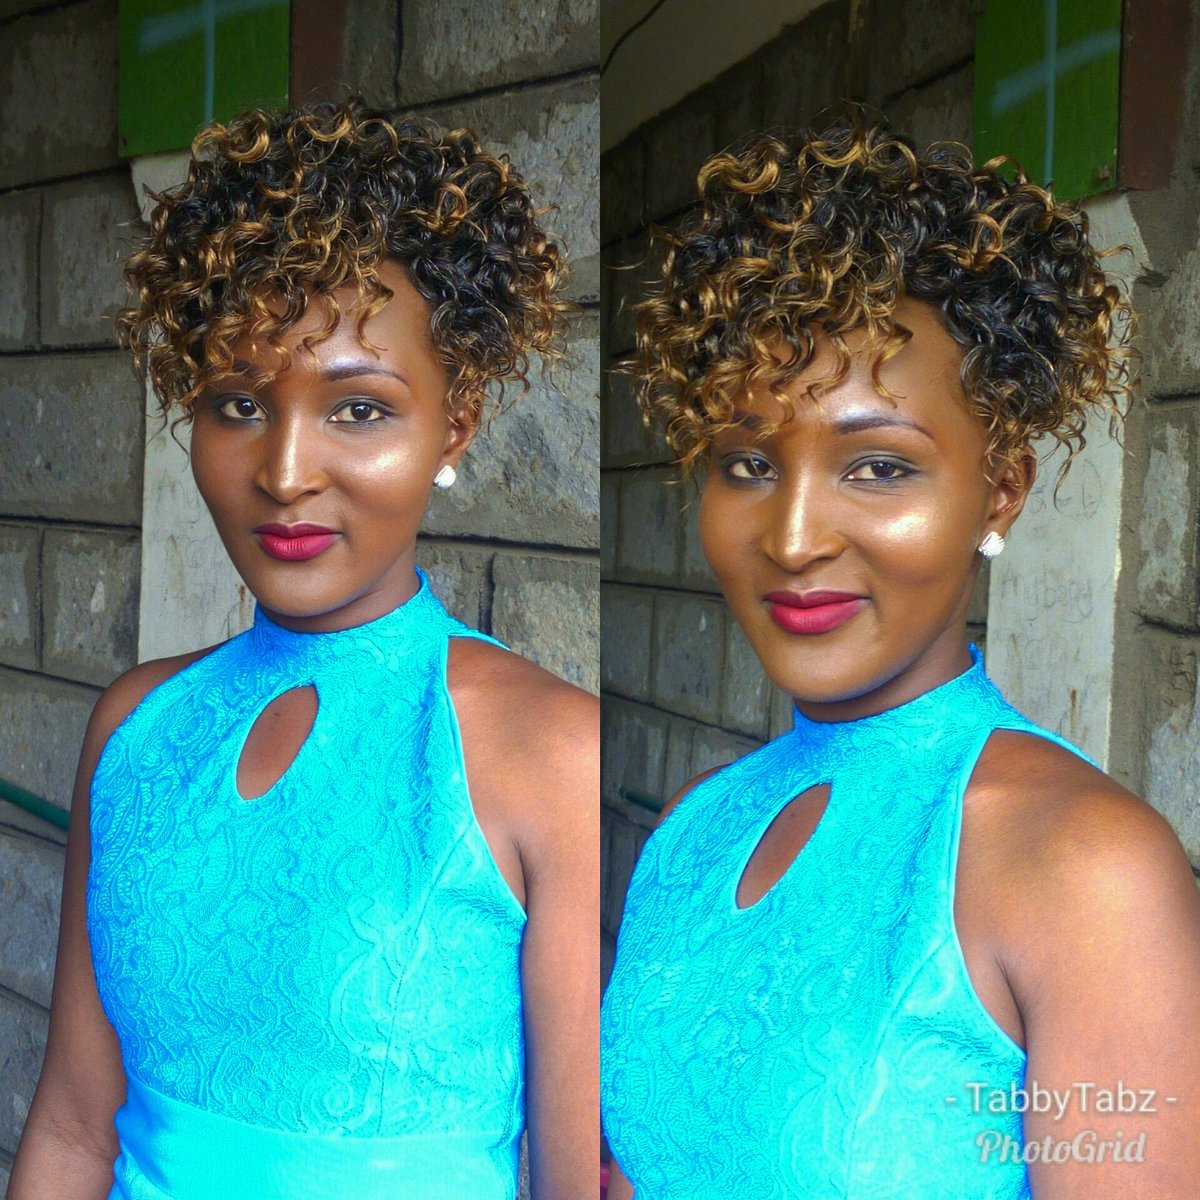 Need a make over..halla at me on 0711358811 #makeover #weekendvibes #weddings #bridalshowers https://t.co/3ms6jAd7Wd